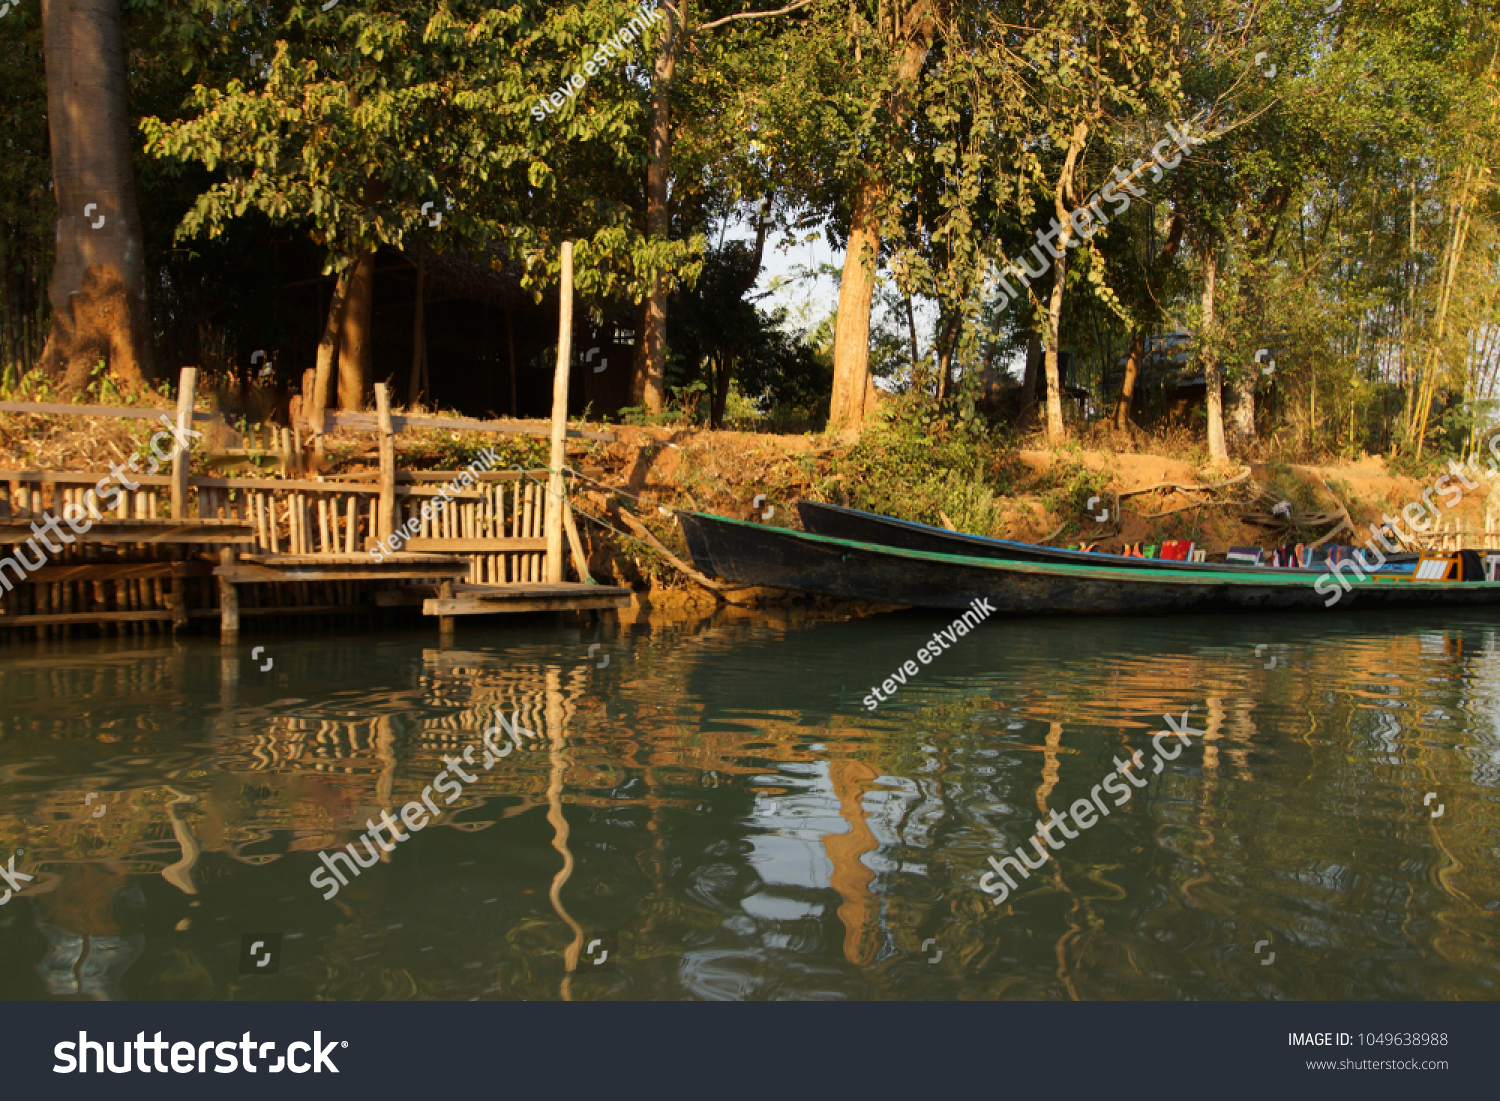 Small Boat Among Floating Gardens Canals Stock Photo (Edit Now ...